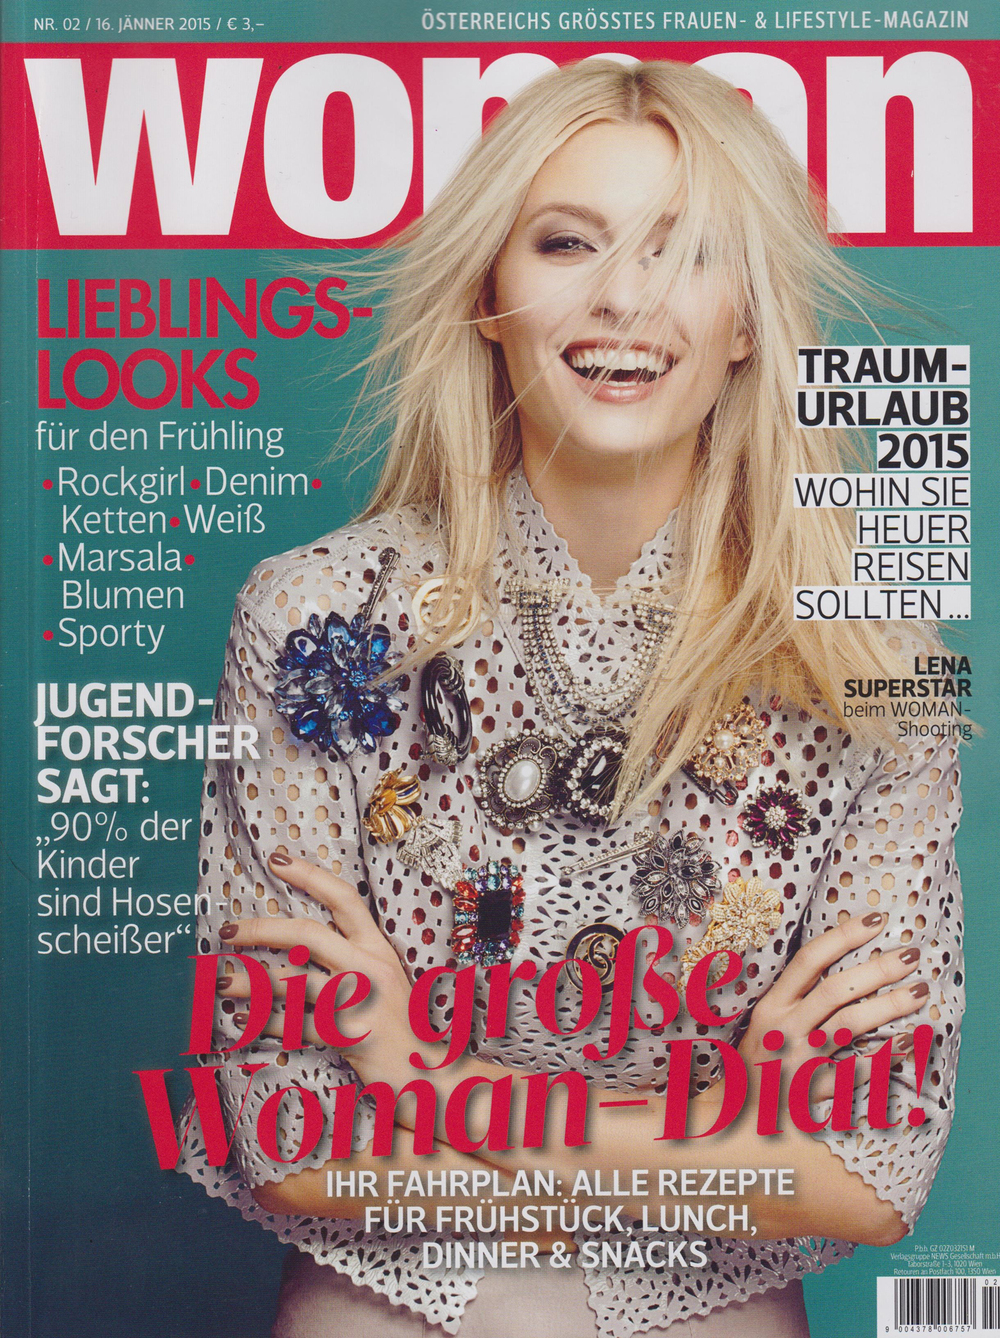 Woman_Nr.2_16.1.2015_Bea Bühler_Cover.jpg